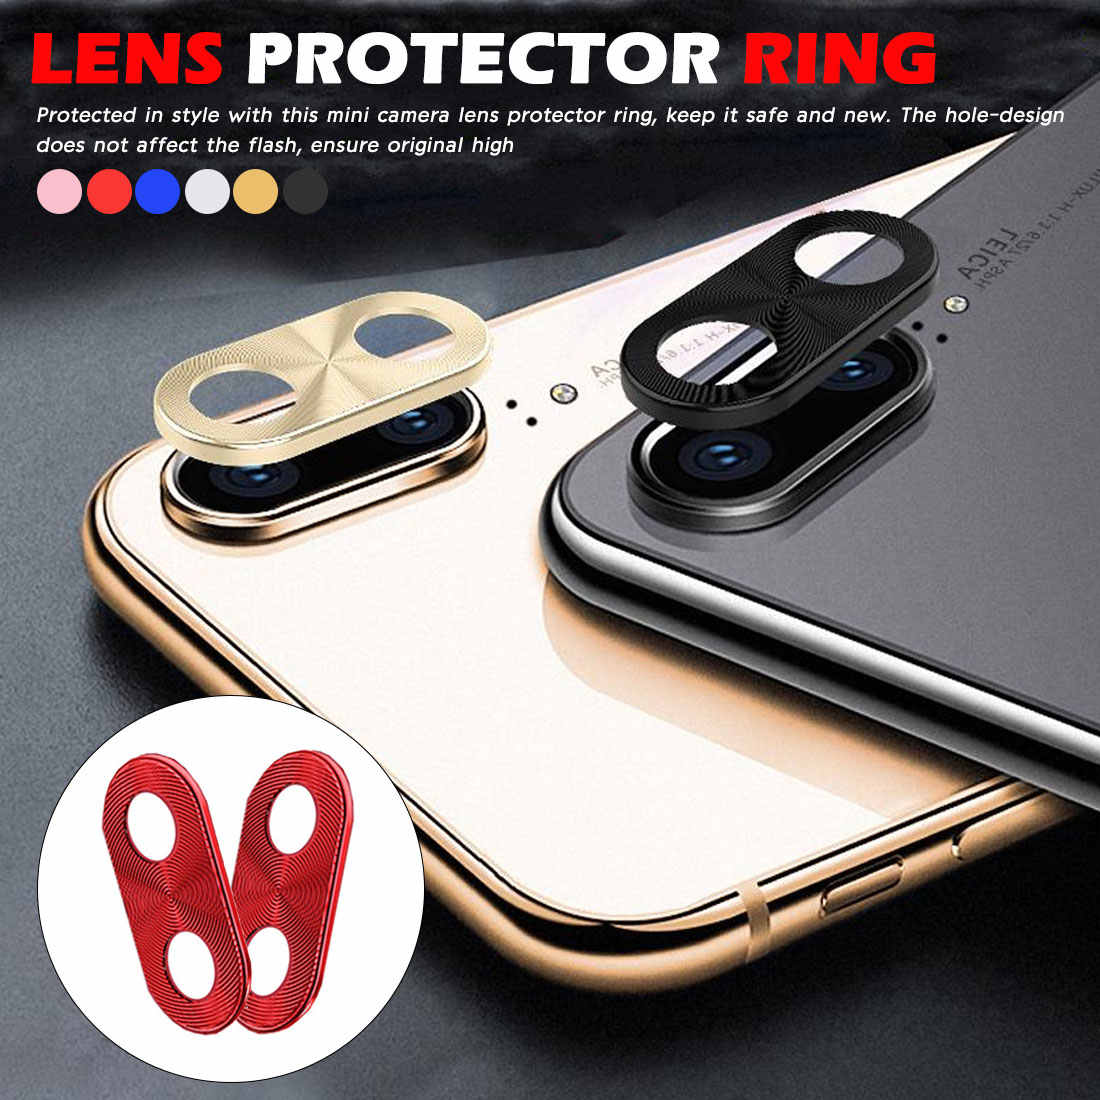 Camera Lens Protector For Huawei P20 P30 Lite Nova 5 Pro 5i 3 3i Honor 20 Pro Aluminum Protective Cover Case Metal Protection